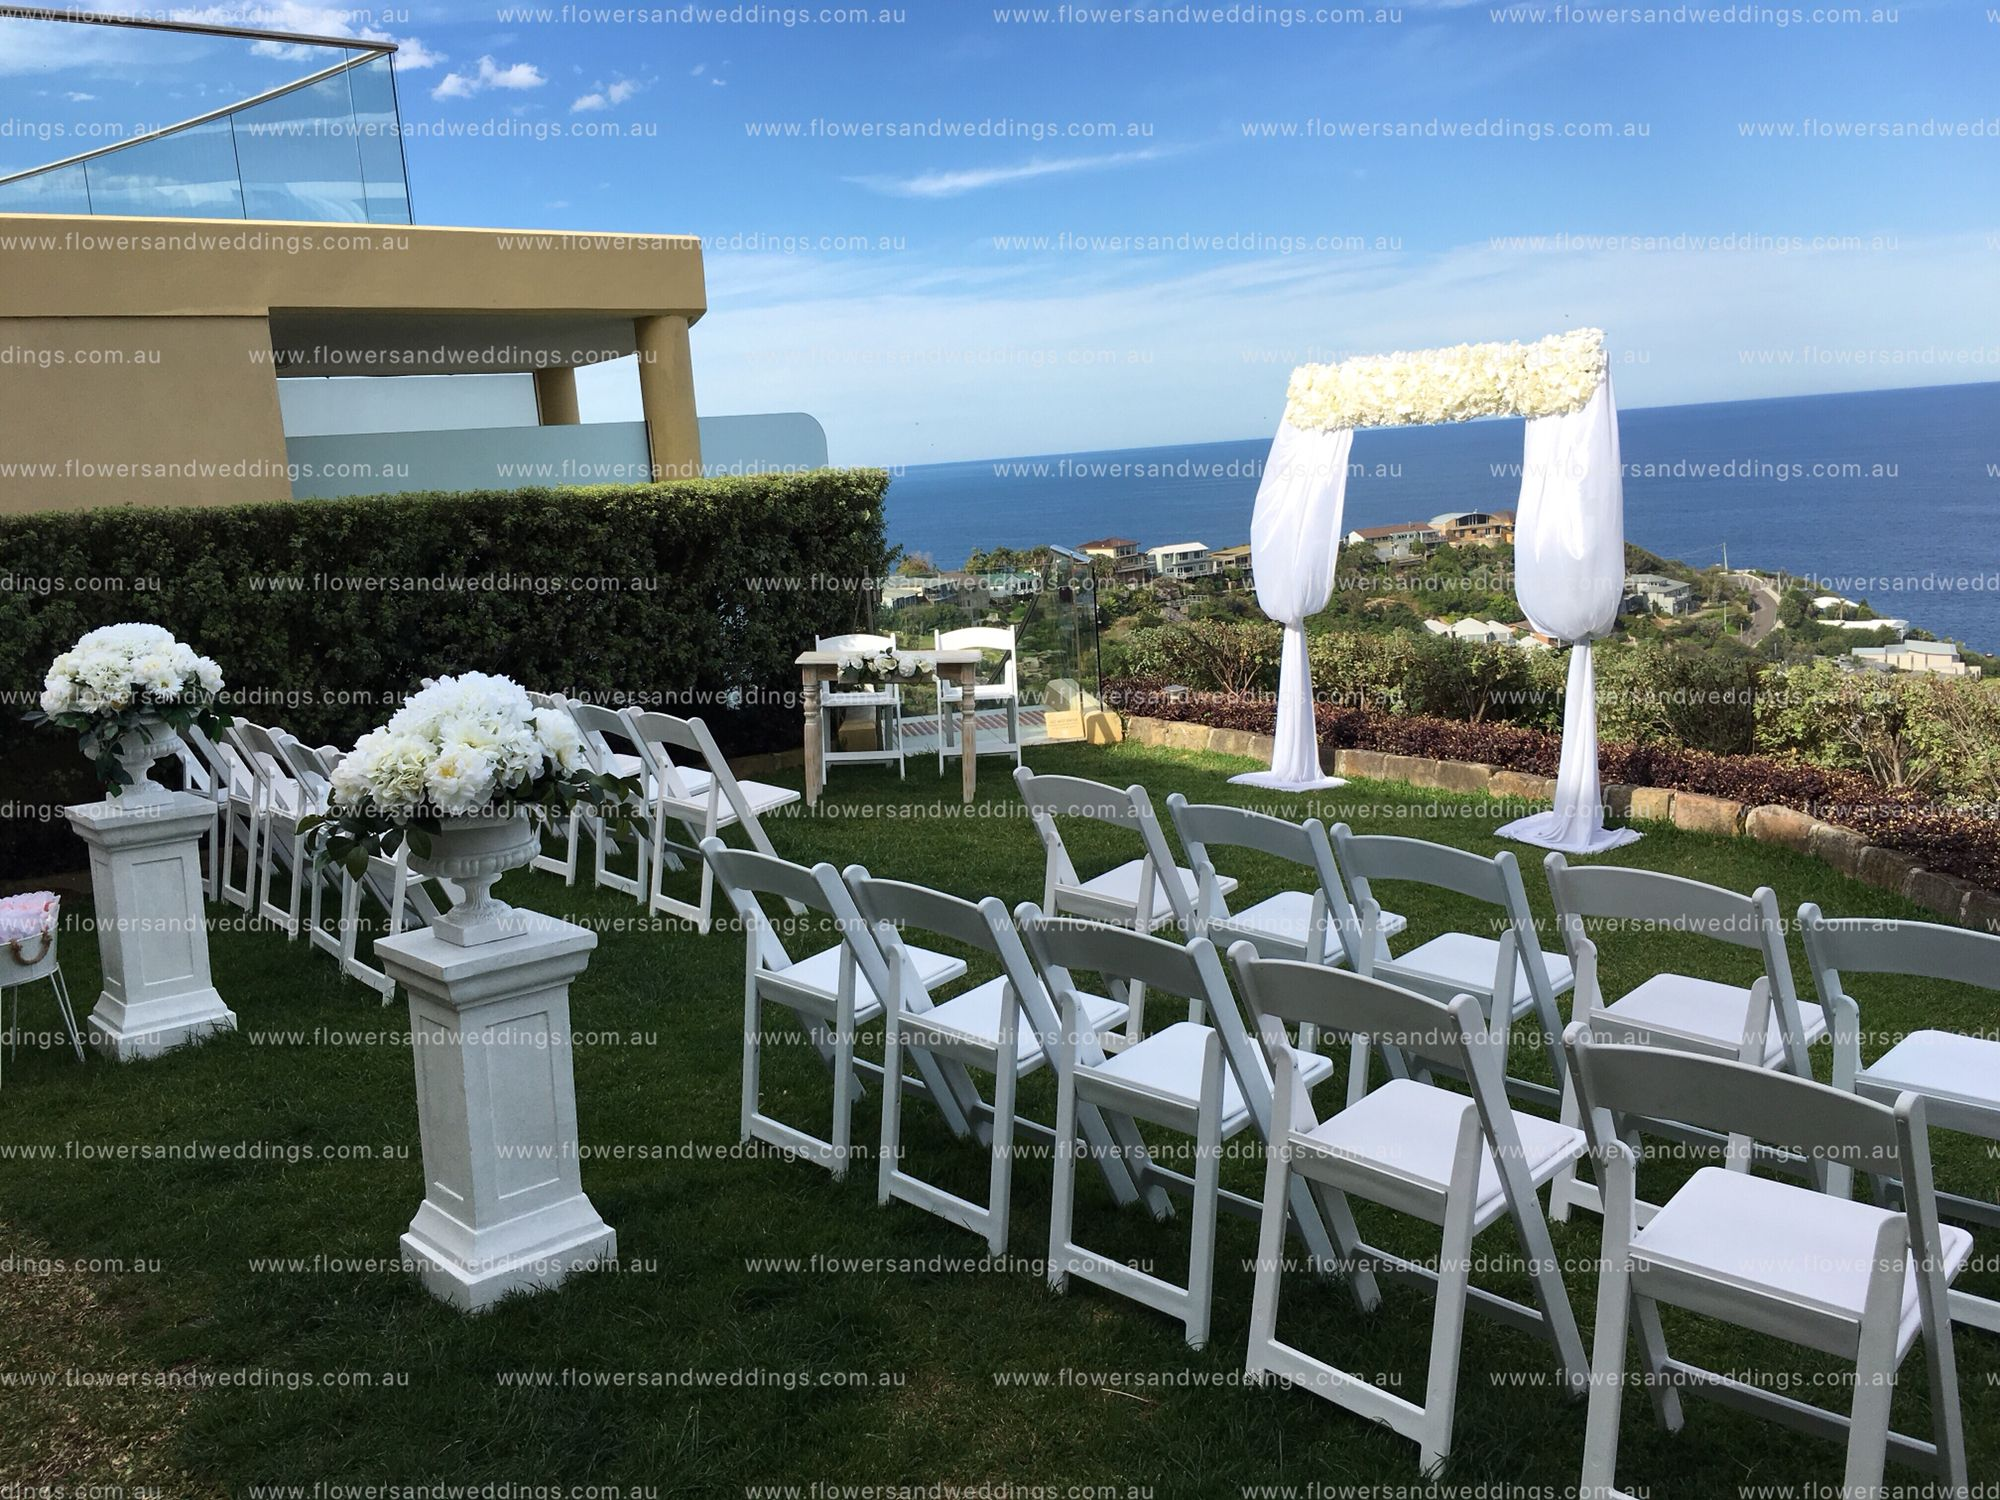 Ceremony Floralarch Arch Urn Pedestals White Chairs Vintage Table Home Flowers Wedding Flowers Sydney Wedding